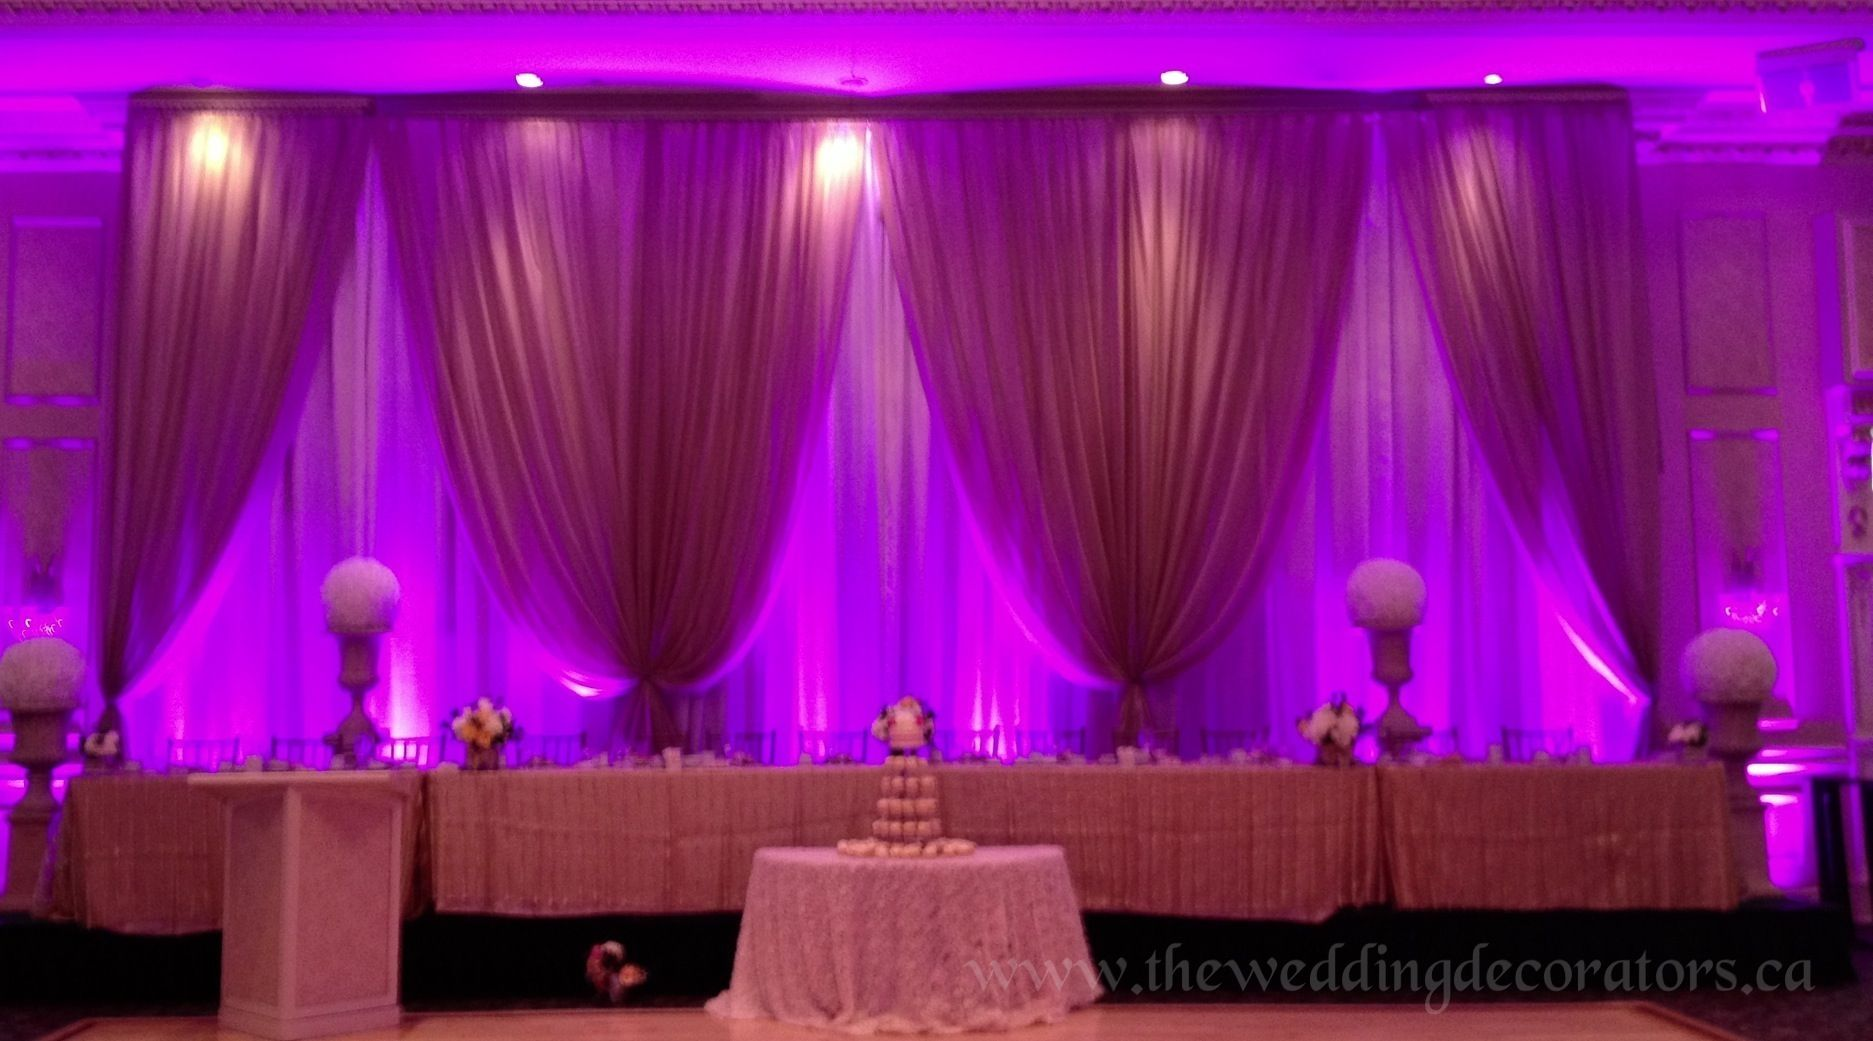 Wedding decoration stage ideas  Wedding backdrop decordraping  Backdrop Ideas  Pinterest